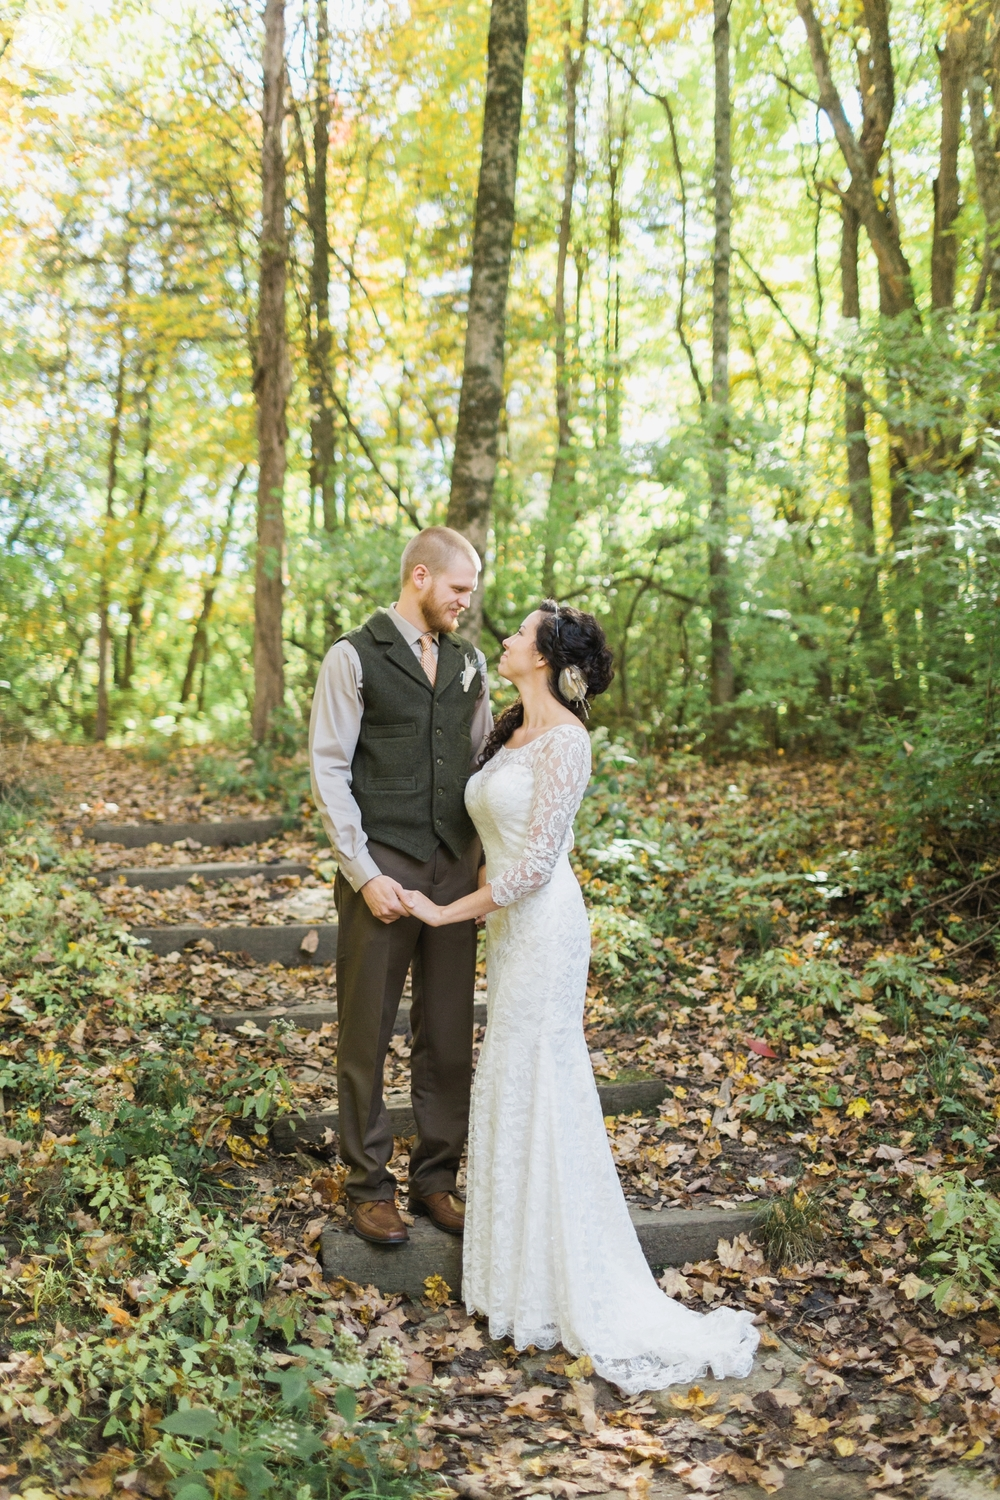 Outdoor-Wedding-in-the-Woods-Photography_4222.jpg